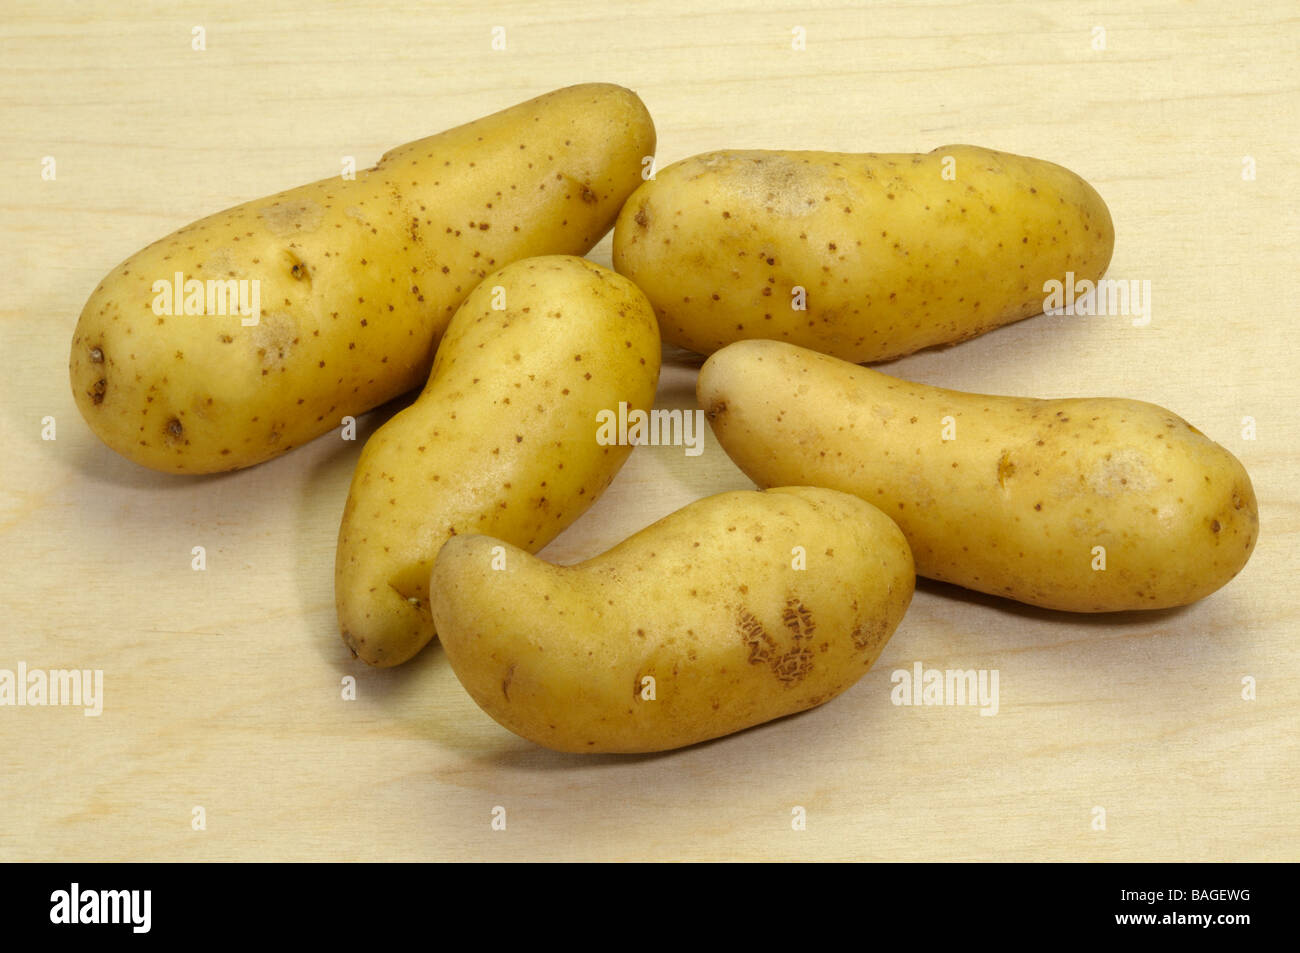 potato solanum tuberosum variety la ratte d ardeche studio stock photo 23719852 alamy. Black Bedroom Furniture Sets. Home Design Ideas